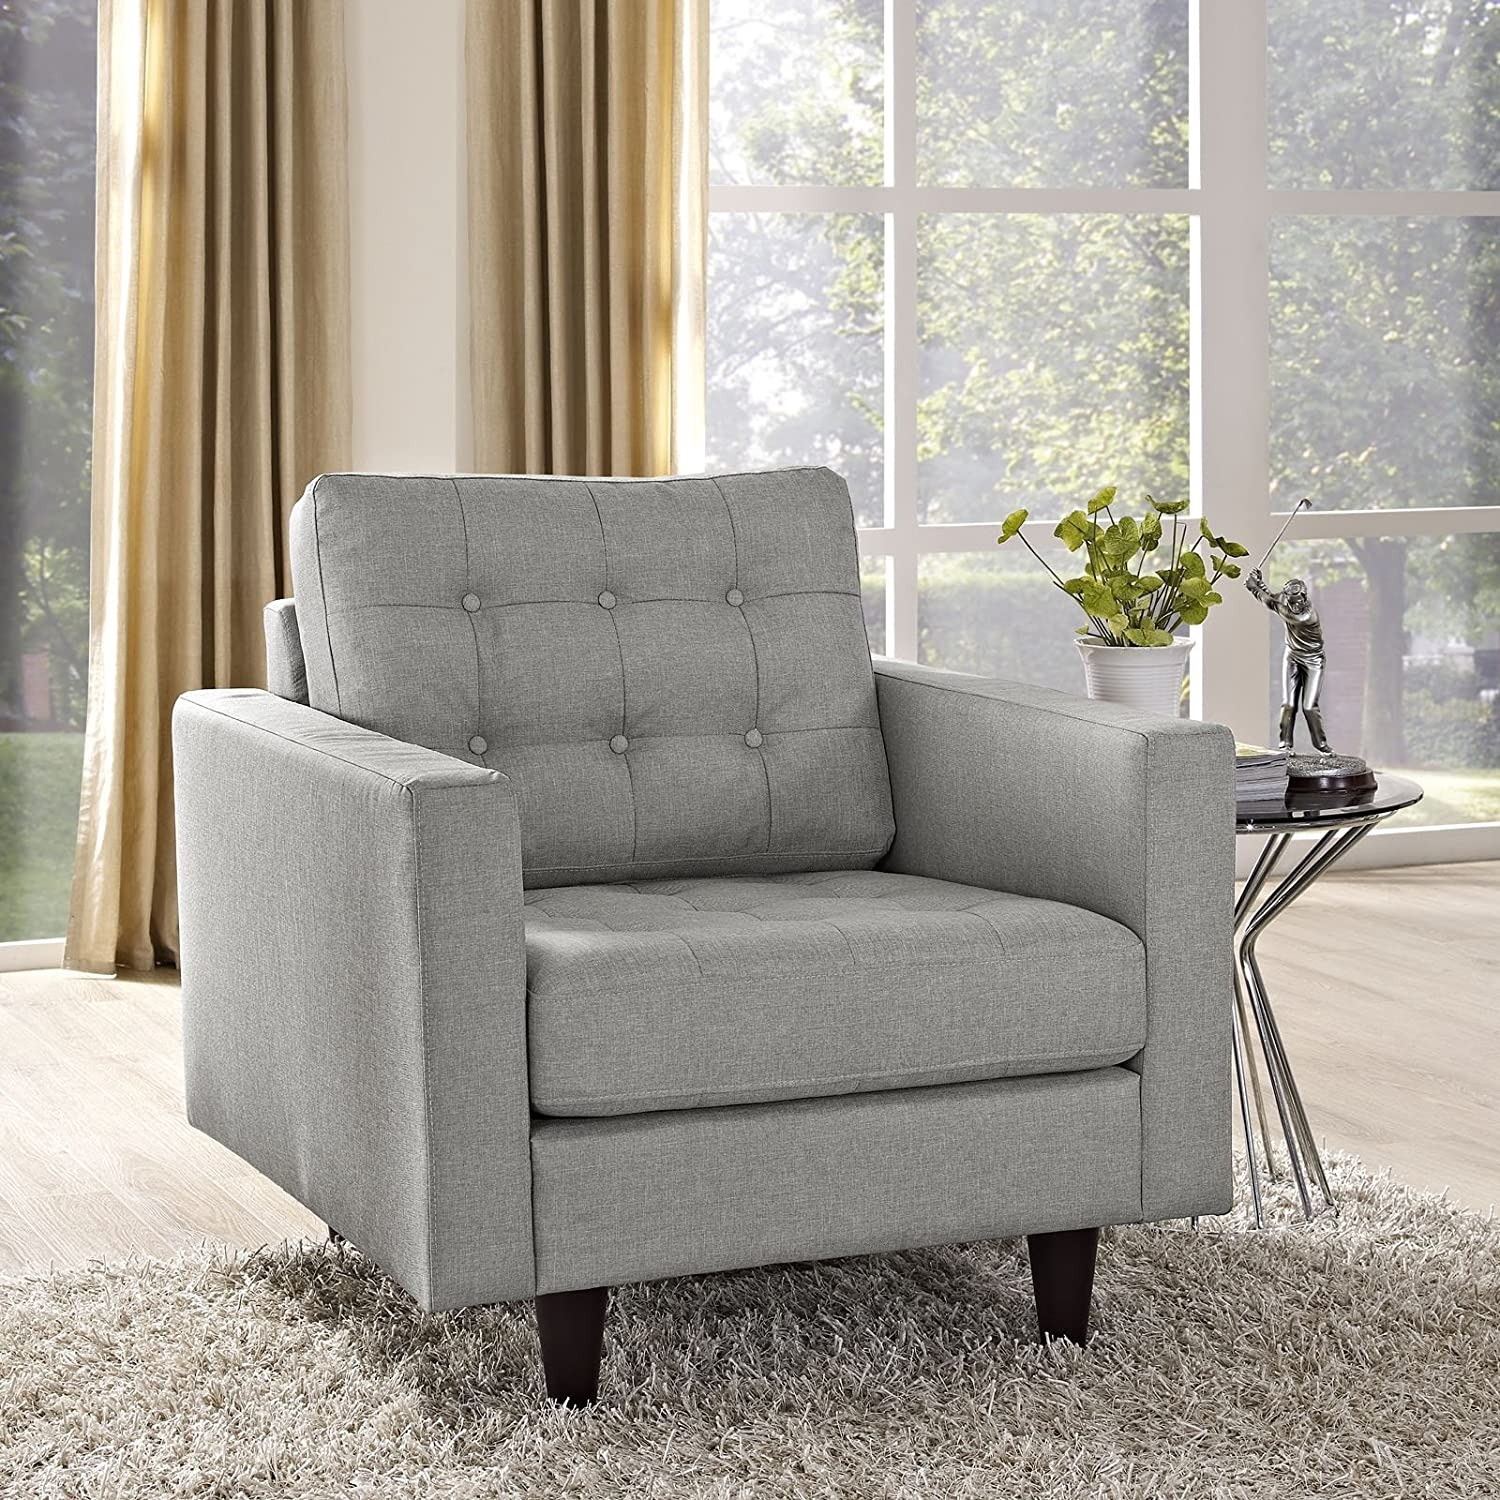 Armchair In Gray Upholstery W/ Tufted Buttons - image-4